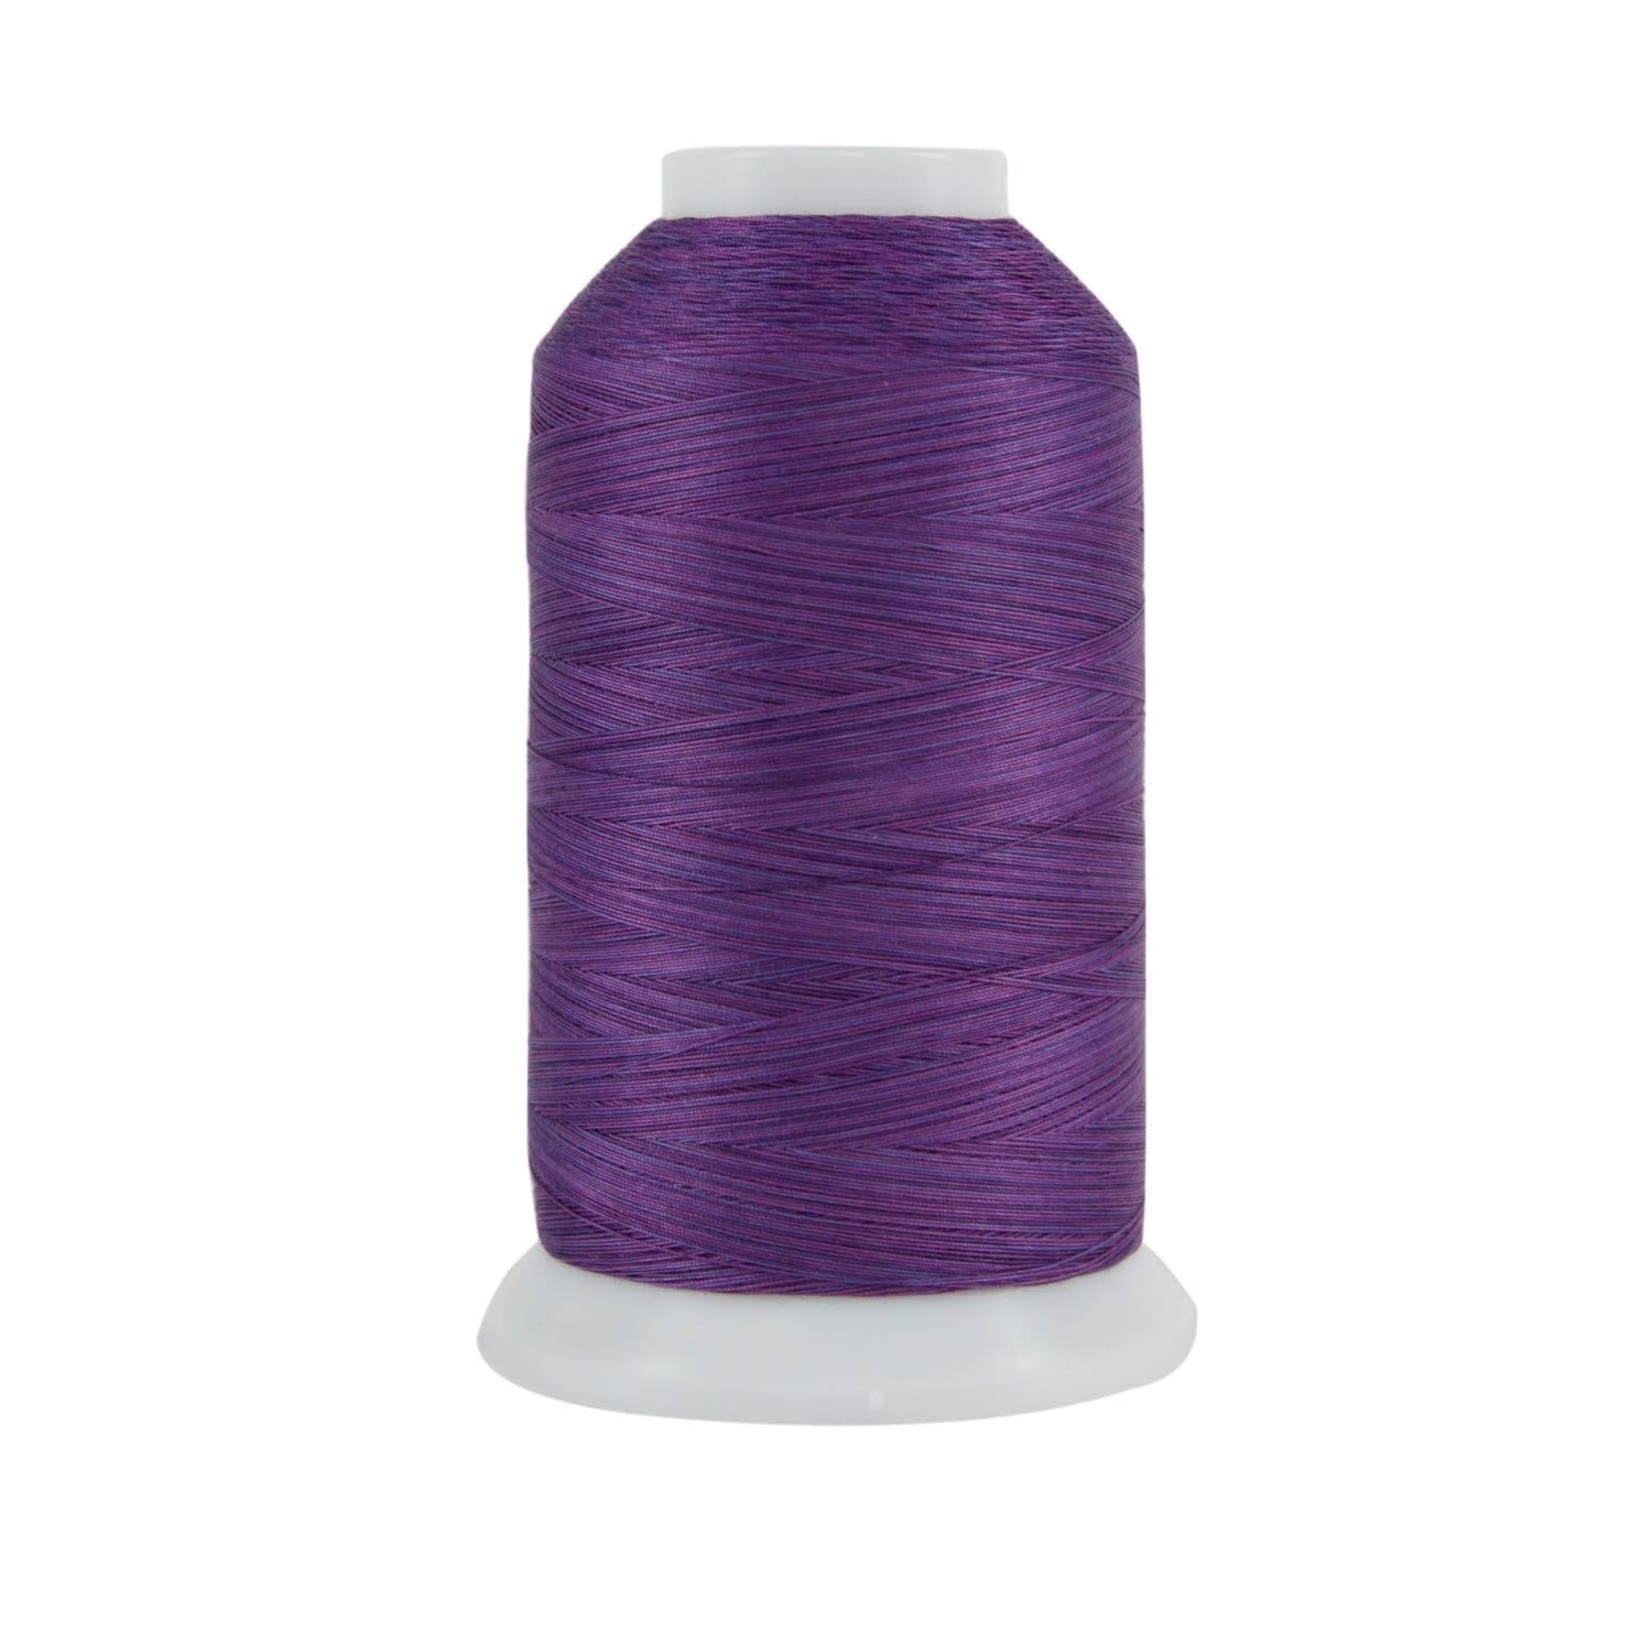 Superior Threads King Tut - #40 - 1828 m - 0950 Berry Patch